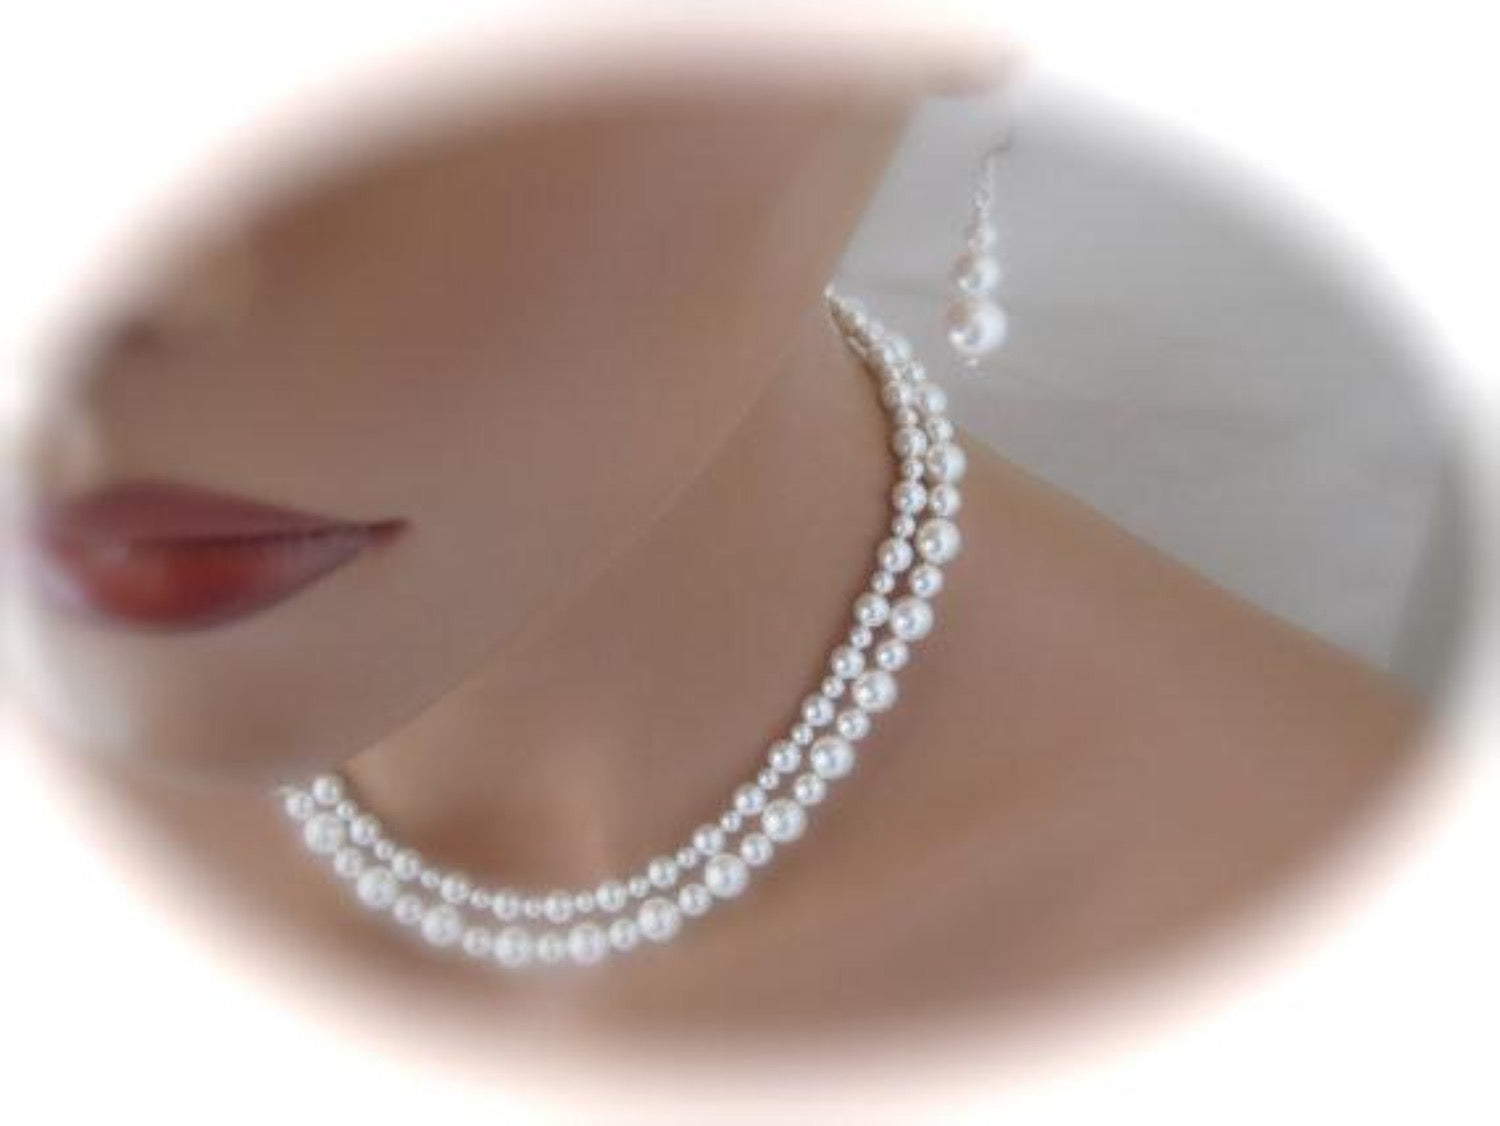 White Double Strand Pearl Necklace Bridal Earrings Wedding Jewelry - Clairesbridal - 3